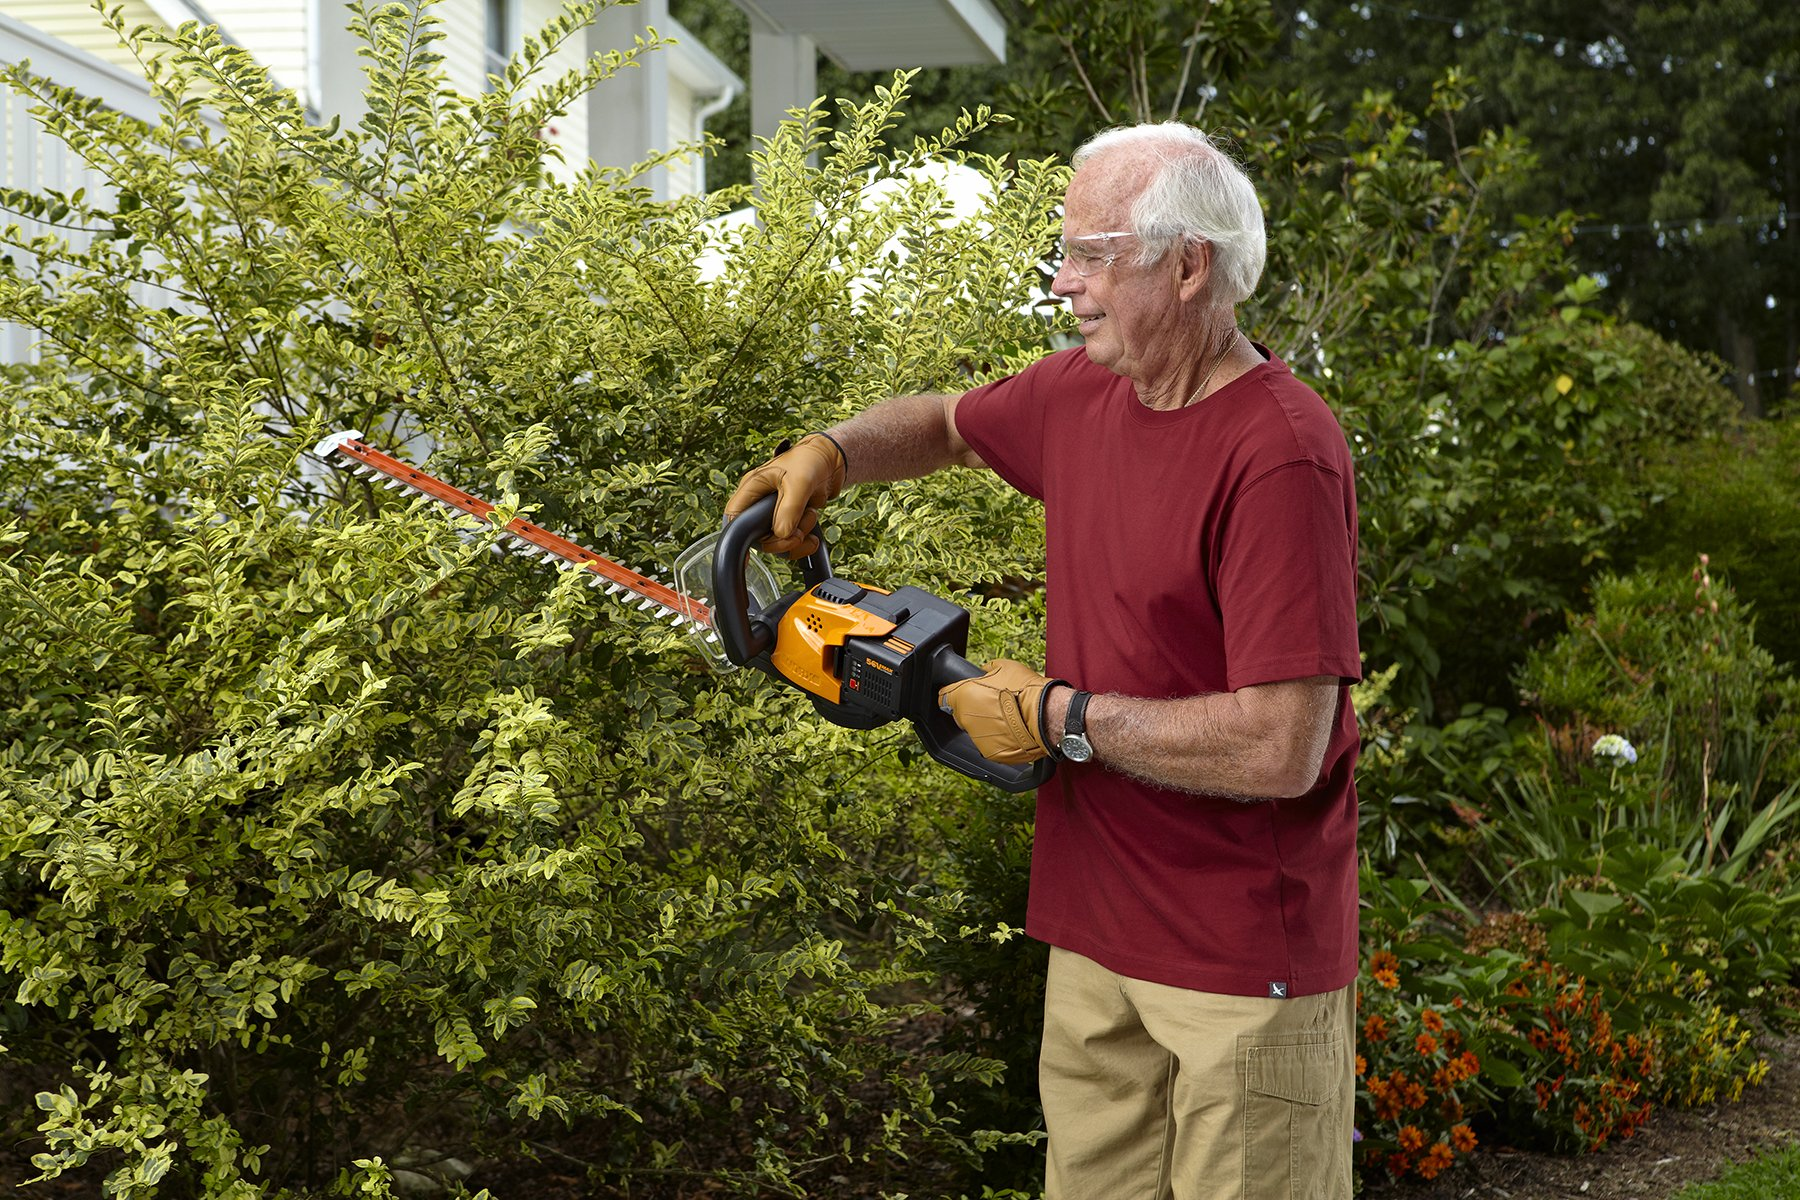 WORX WG291 56V Lithium-Ion Cordless Hedge Trimmer, 24-Inch, Battery and Charger Included by Worx (Image #4)